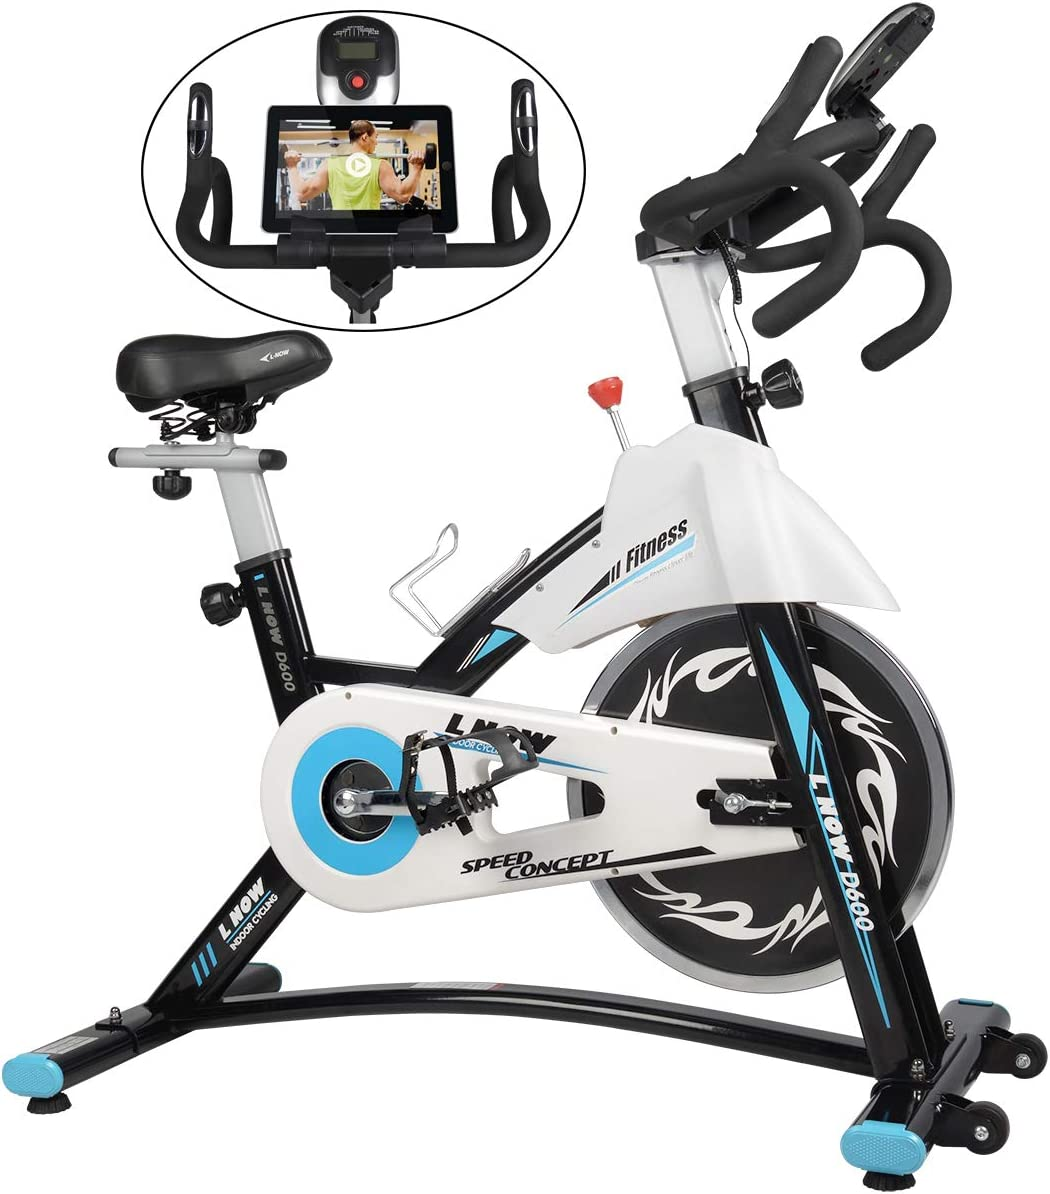 L NOW Indoor Exercise Bike Indoor Cycling Stationary Bike, Belt Drive with Heart Rate, Adjustable Seat and Handlebar, Tablet Holder, Stable Quiet and Smooth for Home Cardio Workout D600